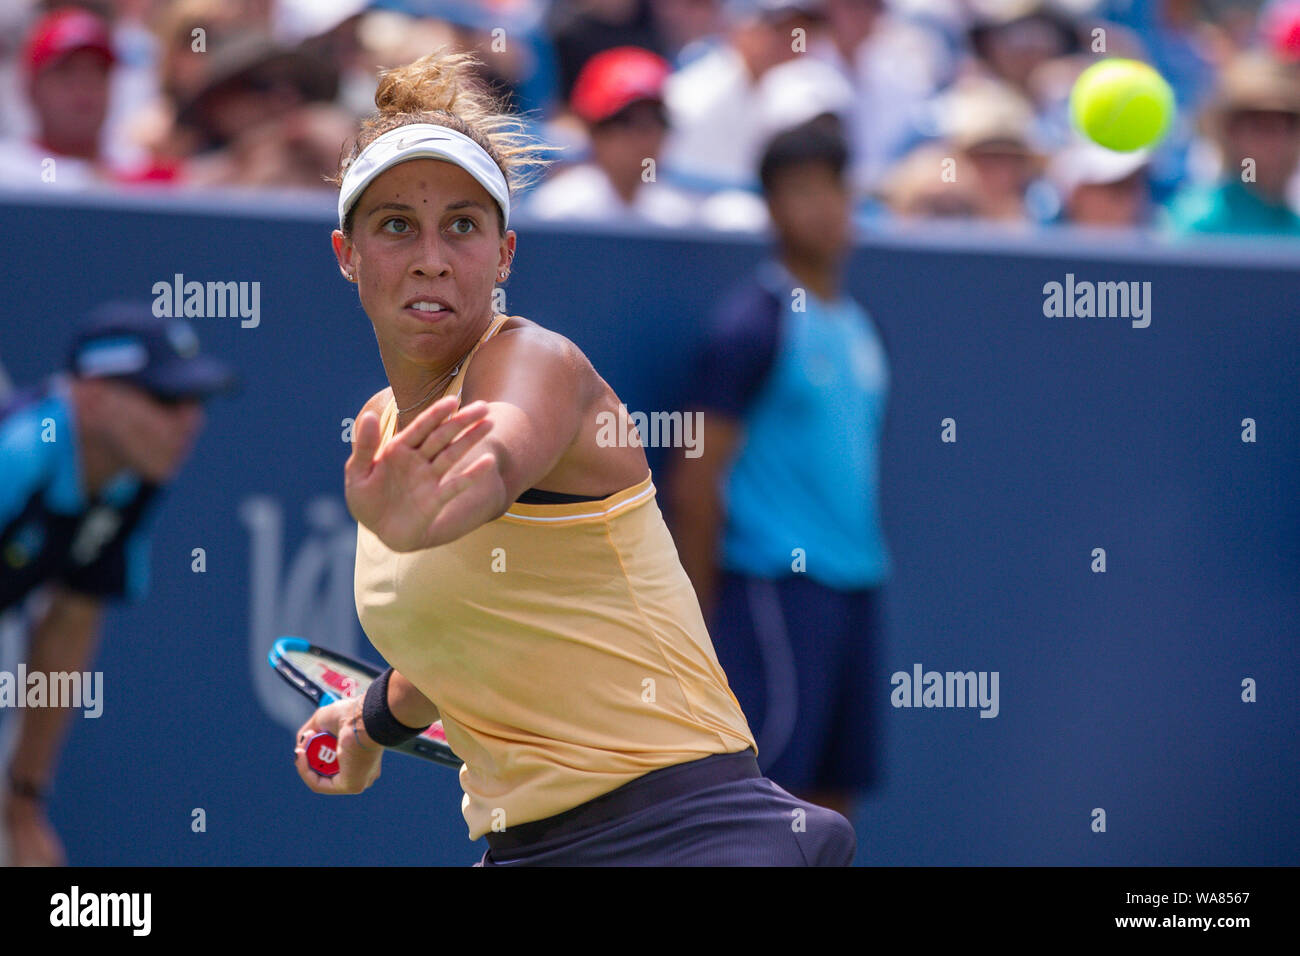 August 18, 2019, Mason, Ohio, USA: Madison Keys (USA) hits a forehand shot during the Women's Final of the Western and Southern Open at the Lindner Family Tennis Center, Mason, Oh. (Credit Image: © Scott Stuart/ZUMA Wire) Stock Photo